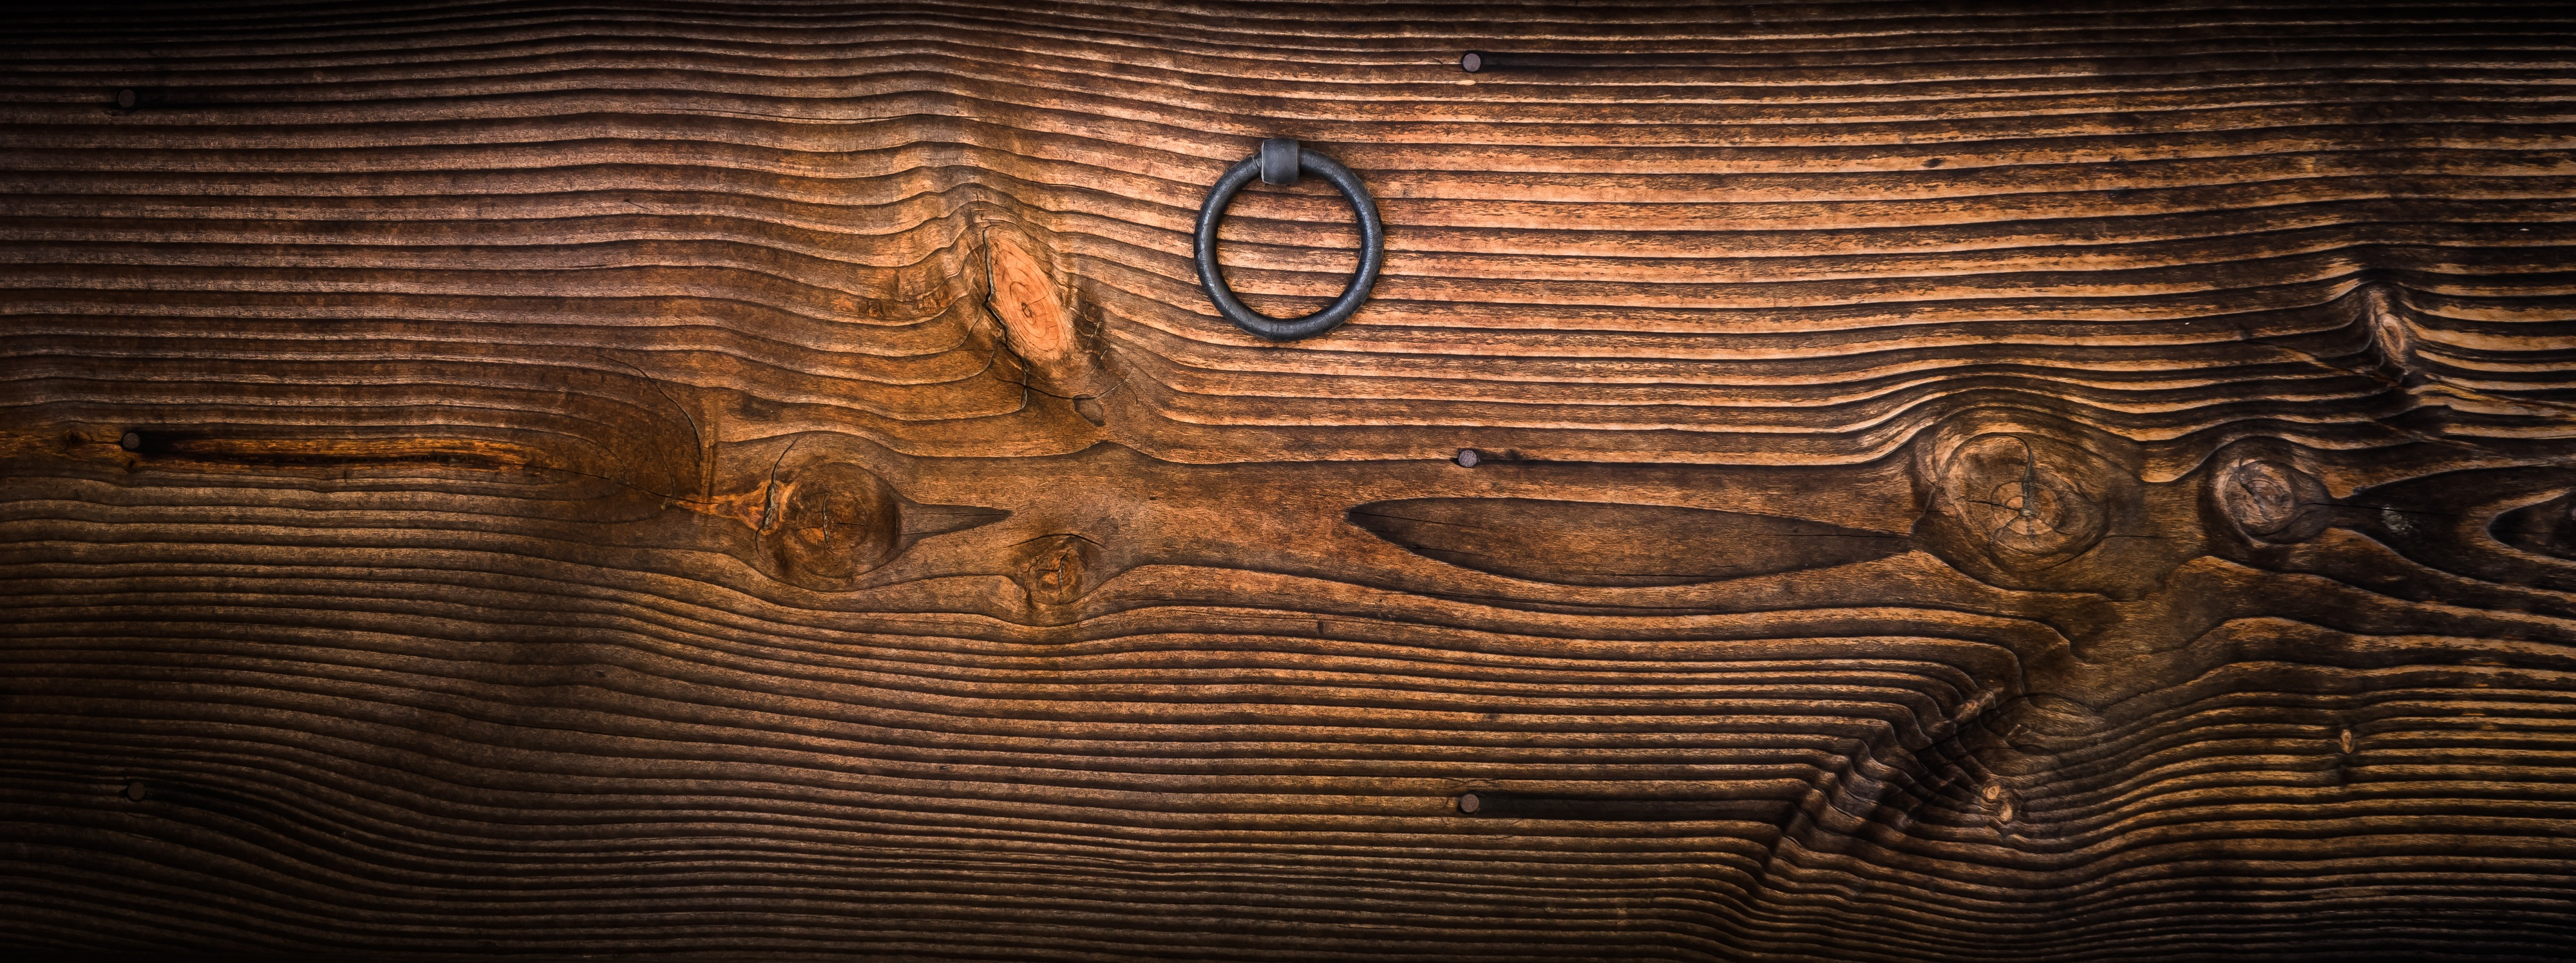 Fall Pictures For Wallpaper Free Gray Metal Door Knocker On Wooden Panel 183 Free Stock Photo